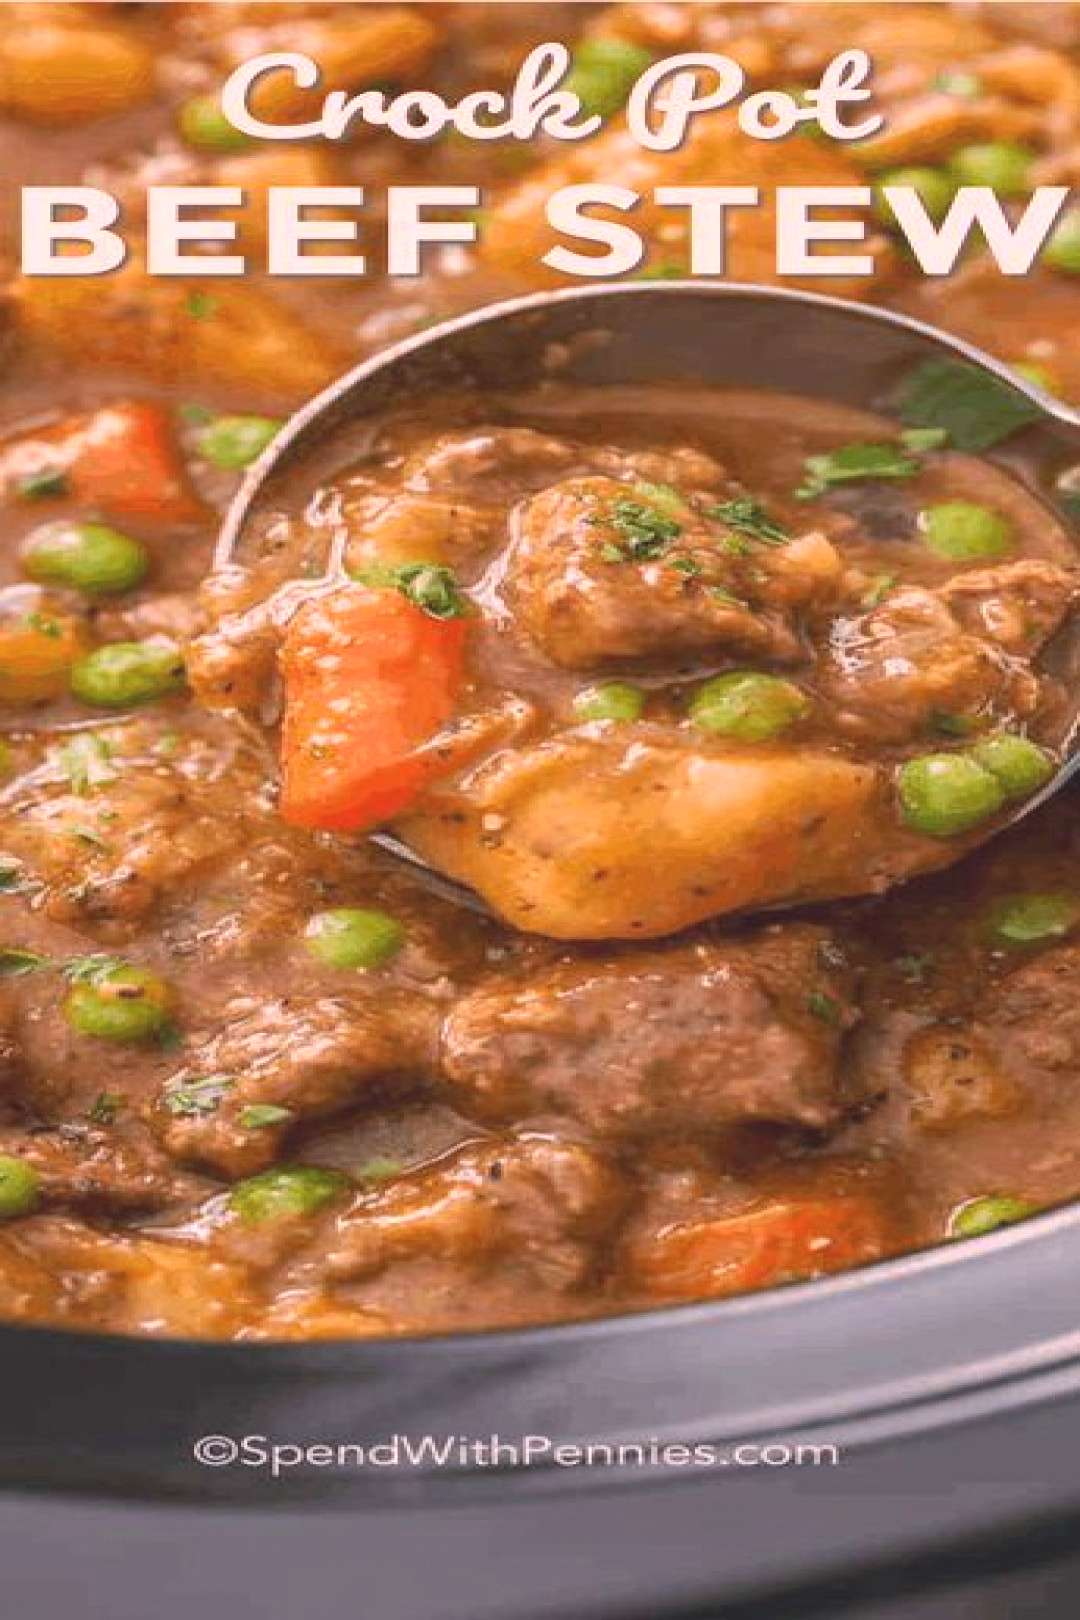 Homemade Crockpot beef stew is an easy and flavorful main course that we love pulling our slow cook